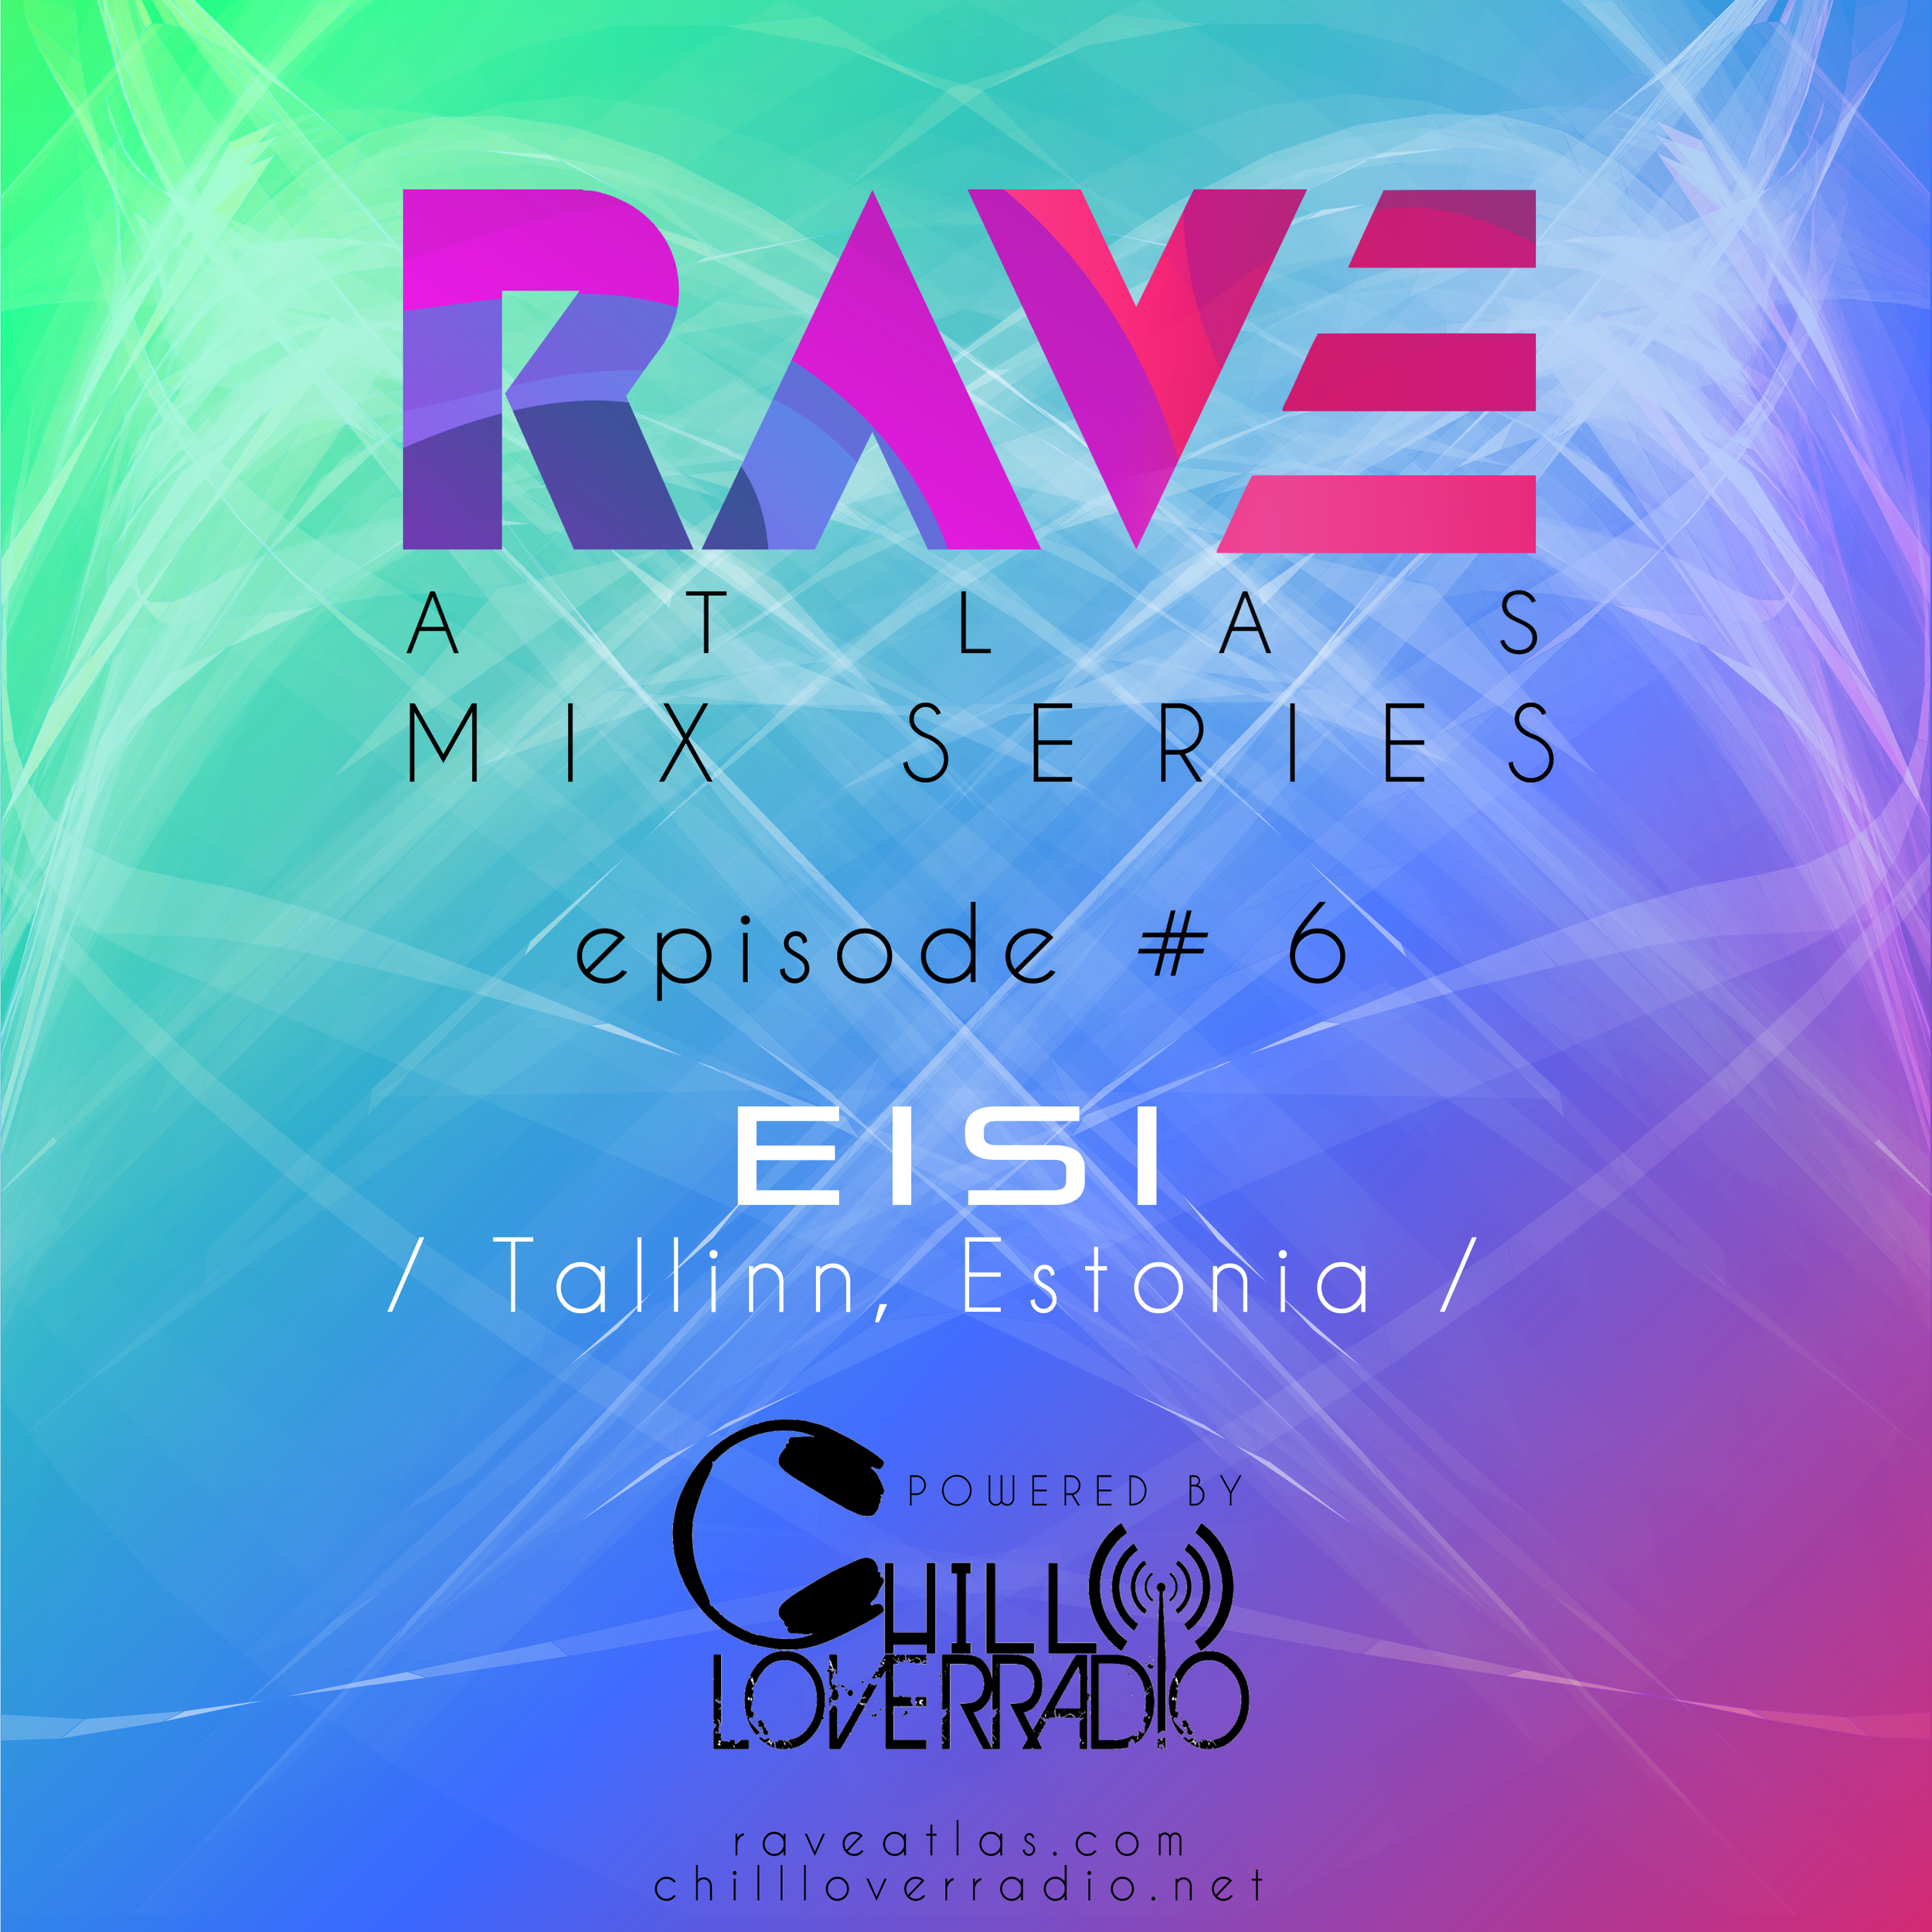 Rave Atlas Mix Series EP 06 - Eisi - Tallinn, Estonia